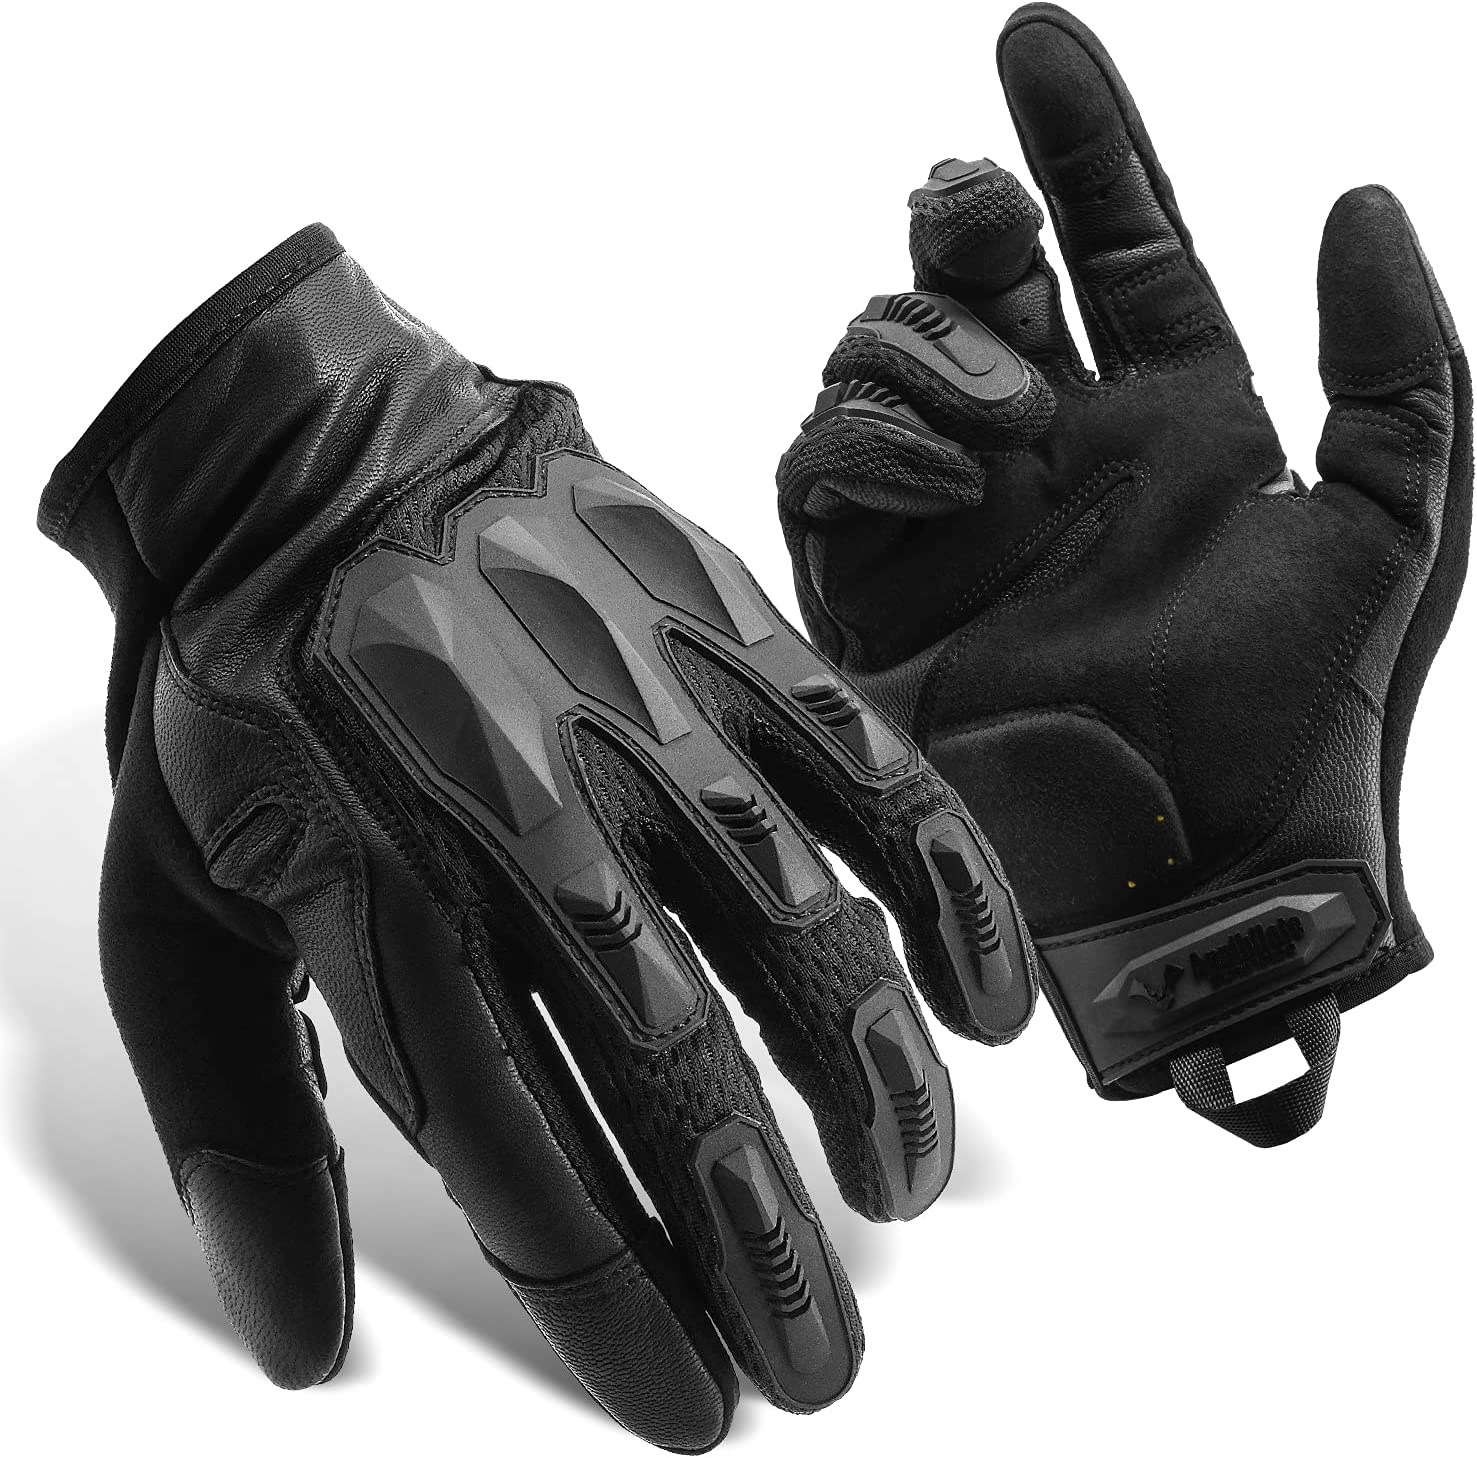 GRAMFIRE Tactical Gloves TPR Houston Beauty products Mall Military Police Protective Knuckle